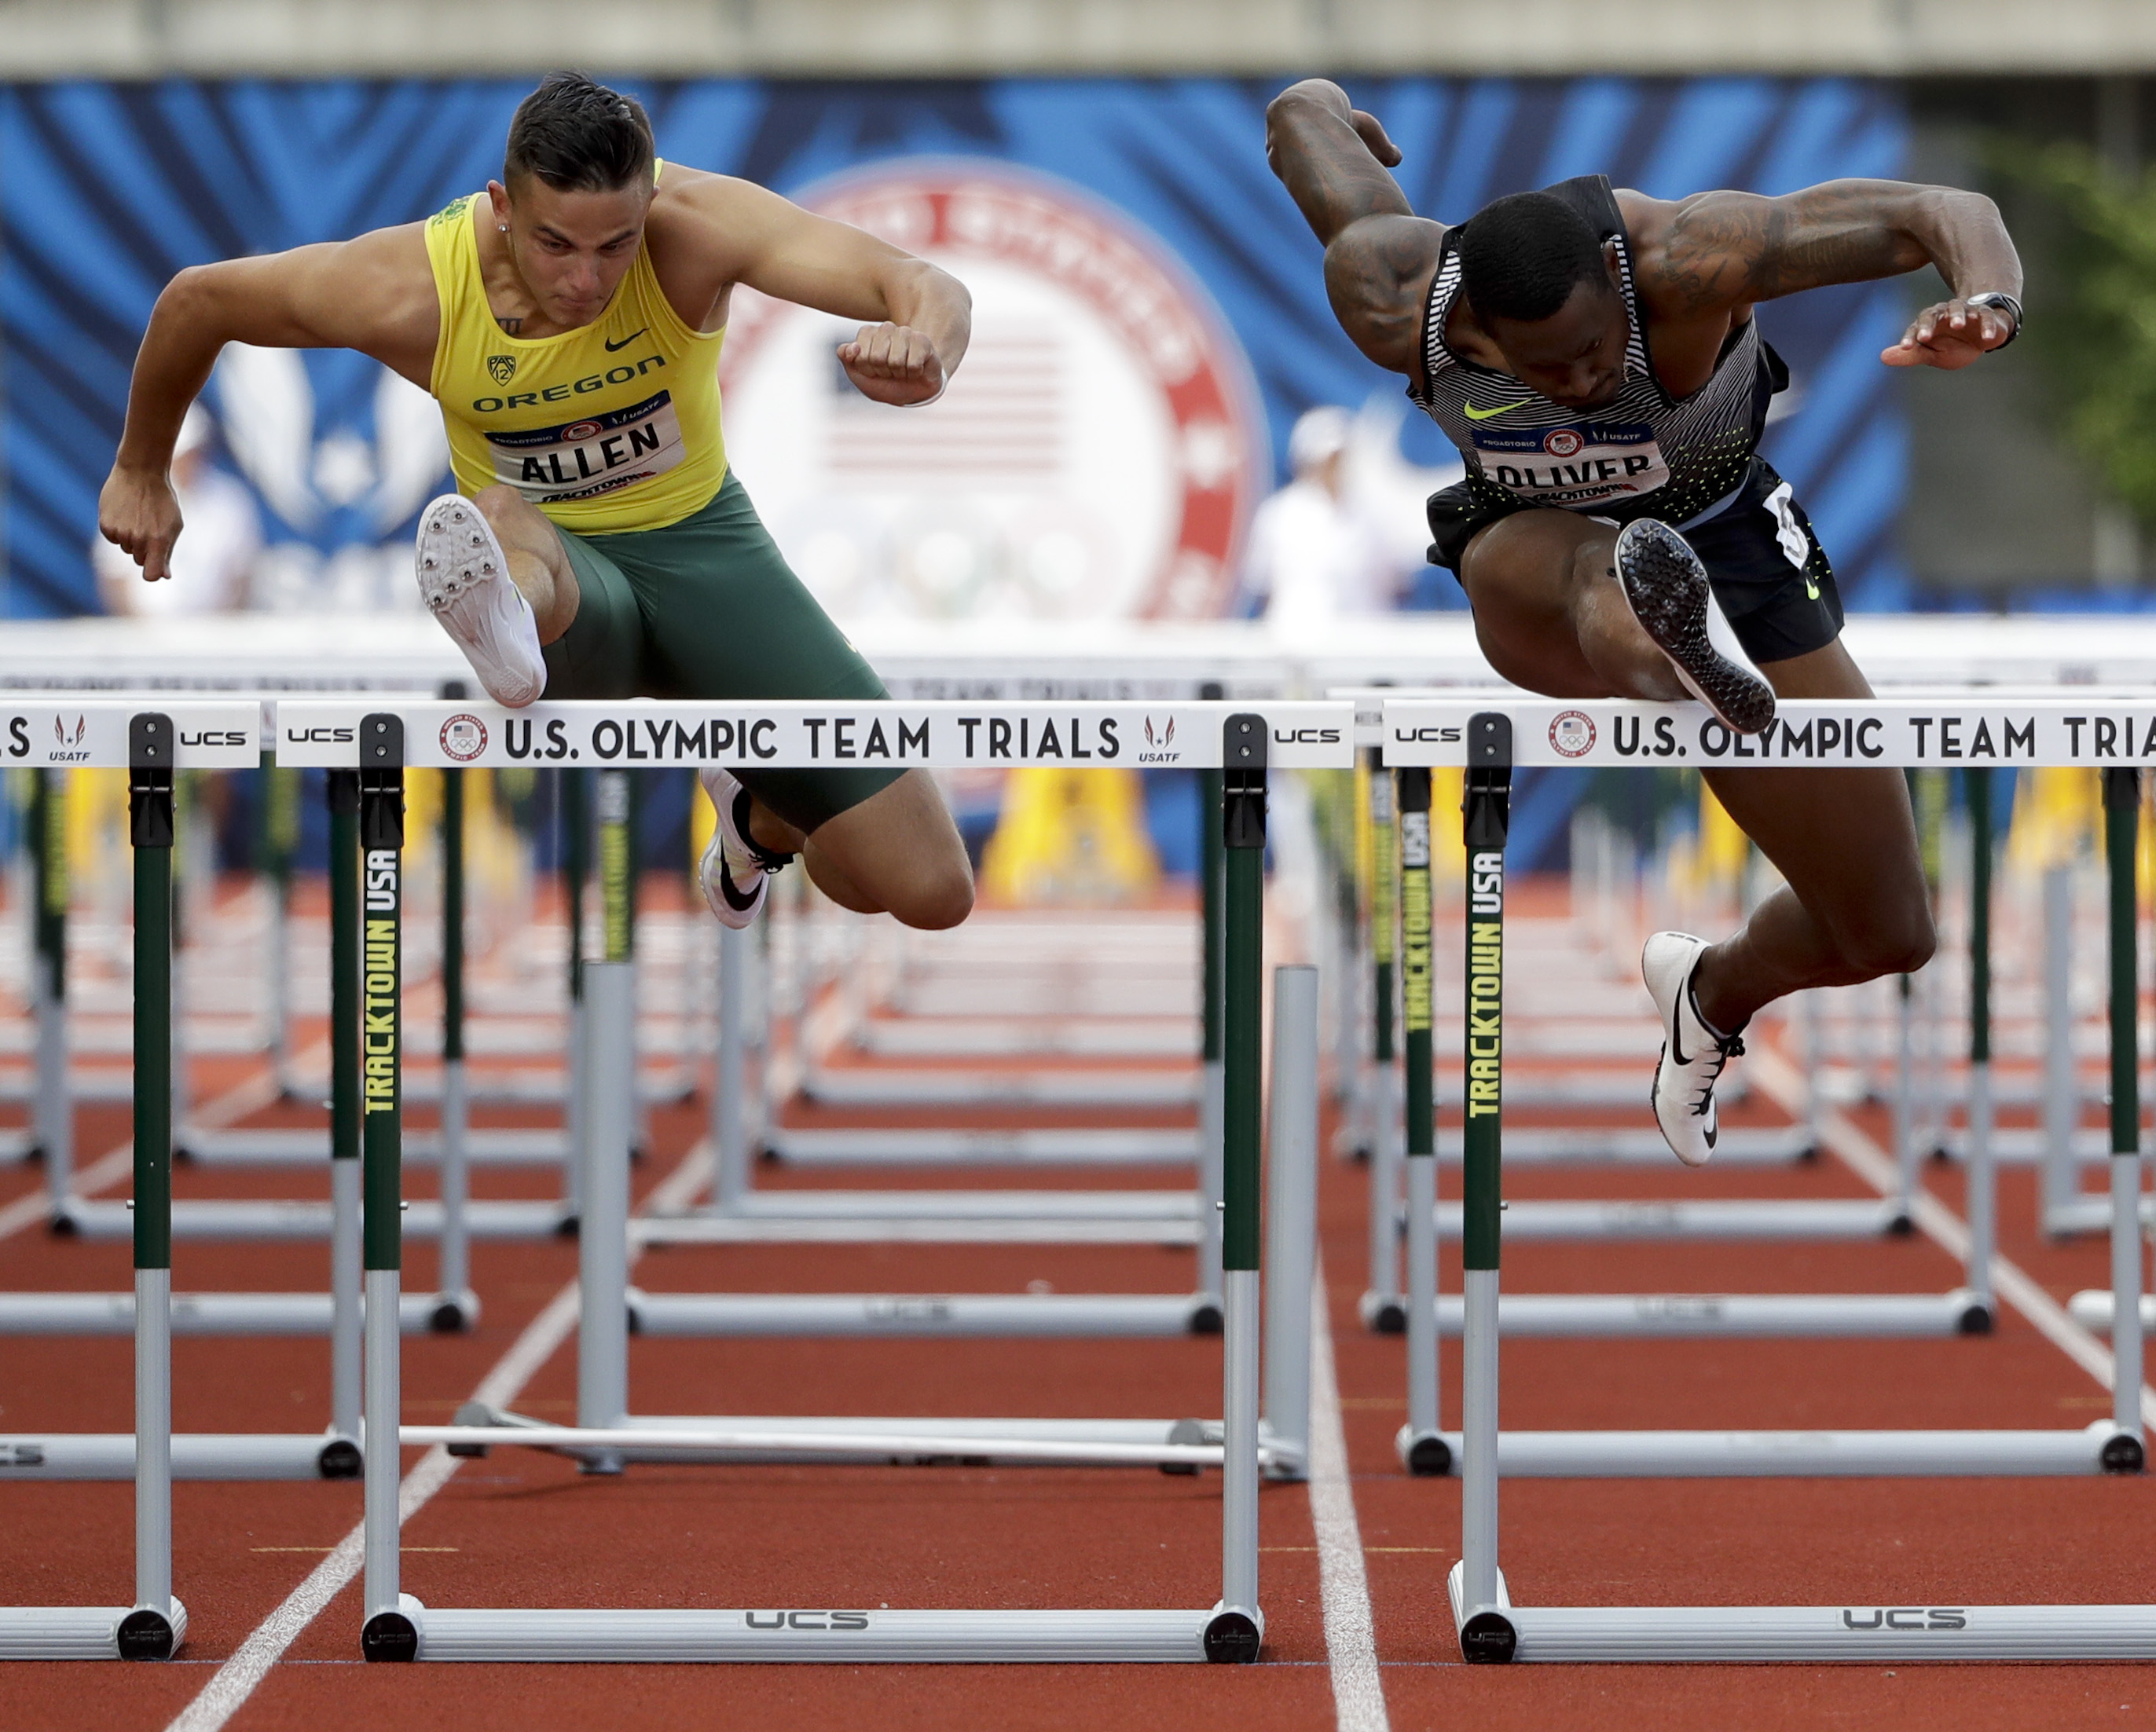 Devon Allen, left, beats David Oliver in the third heat of the semifinals in the men's 110-meter hurdles at the U.S. Olympic Track and Field Trials, Saturday, July 9, 2016, in Eugene Ore. (AP Photo/Marcio Jose Sanchez)